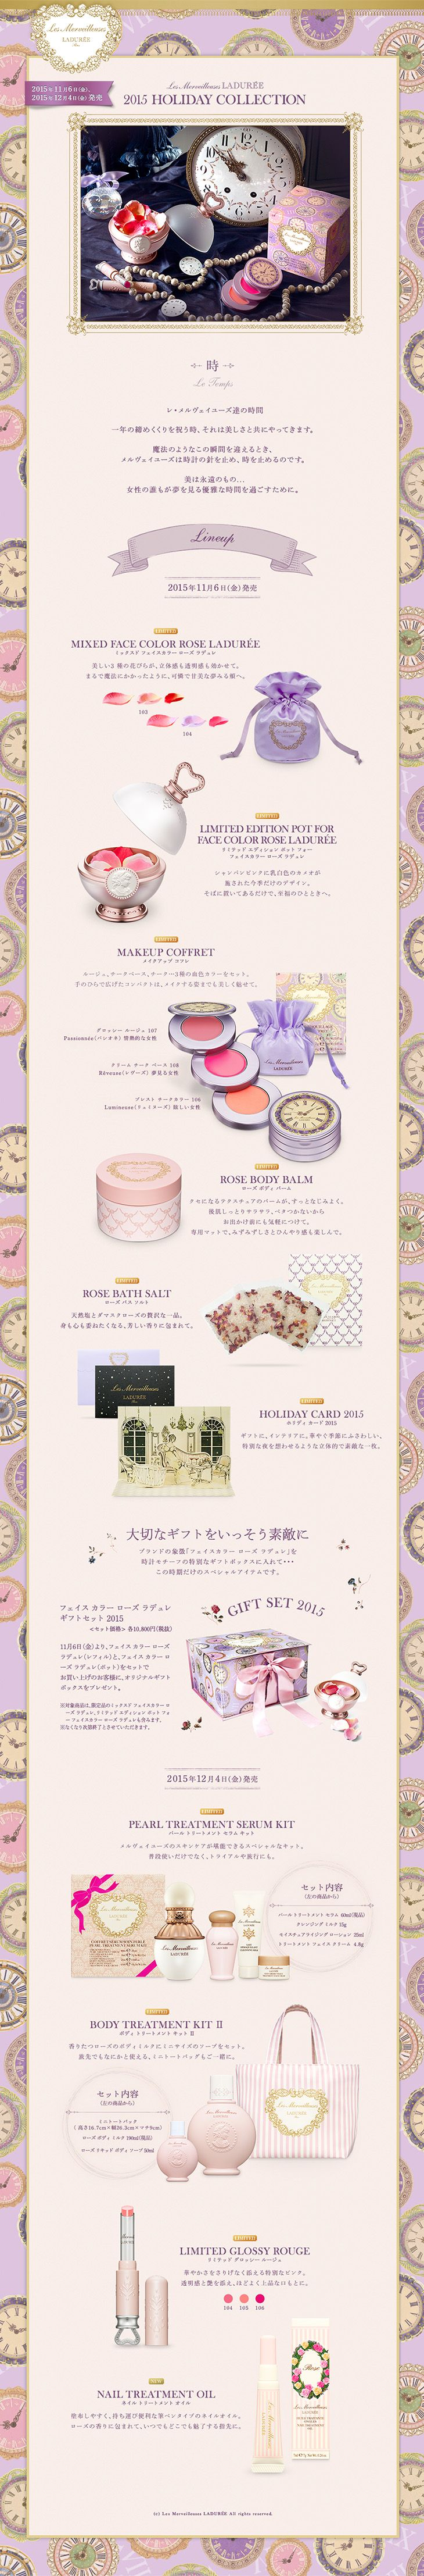 LADUREE 2015 HOLIDAY COLLECTION